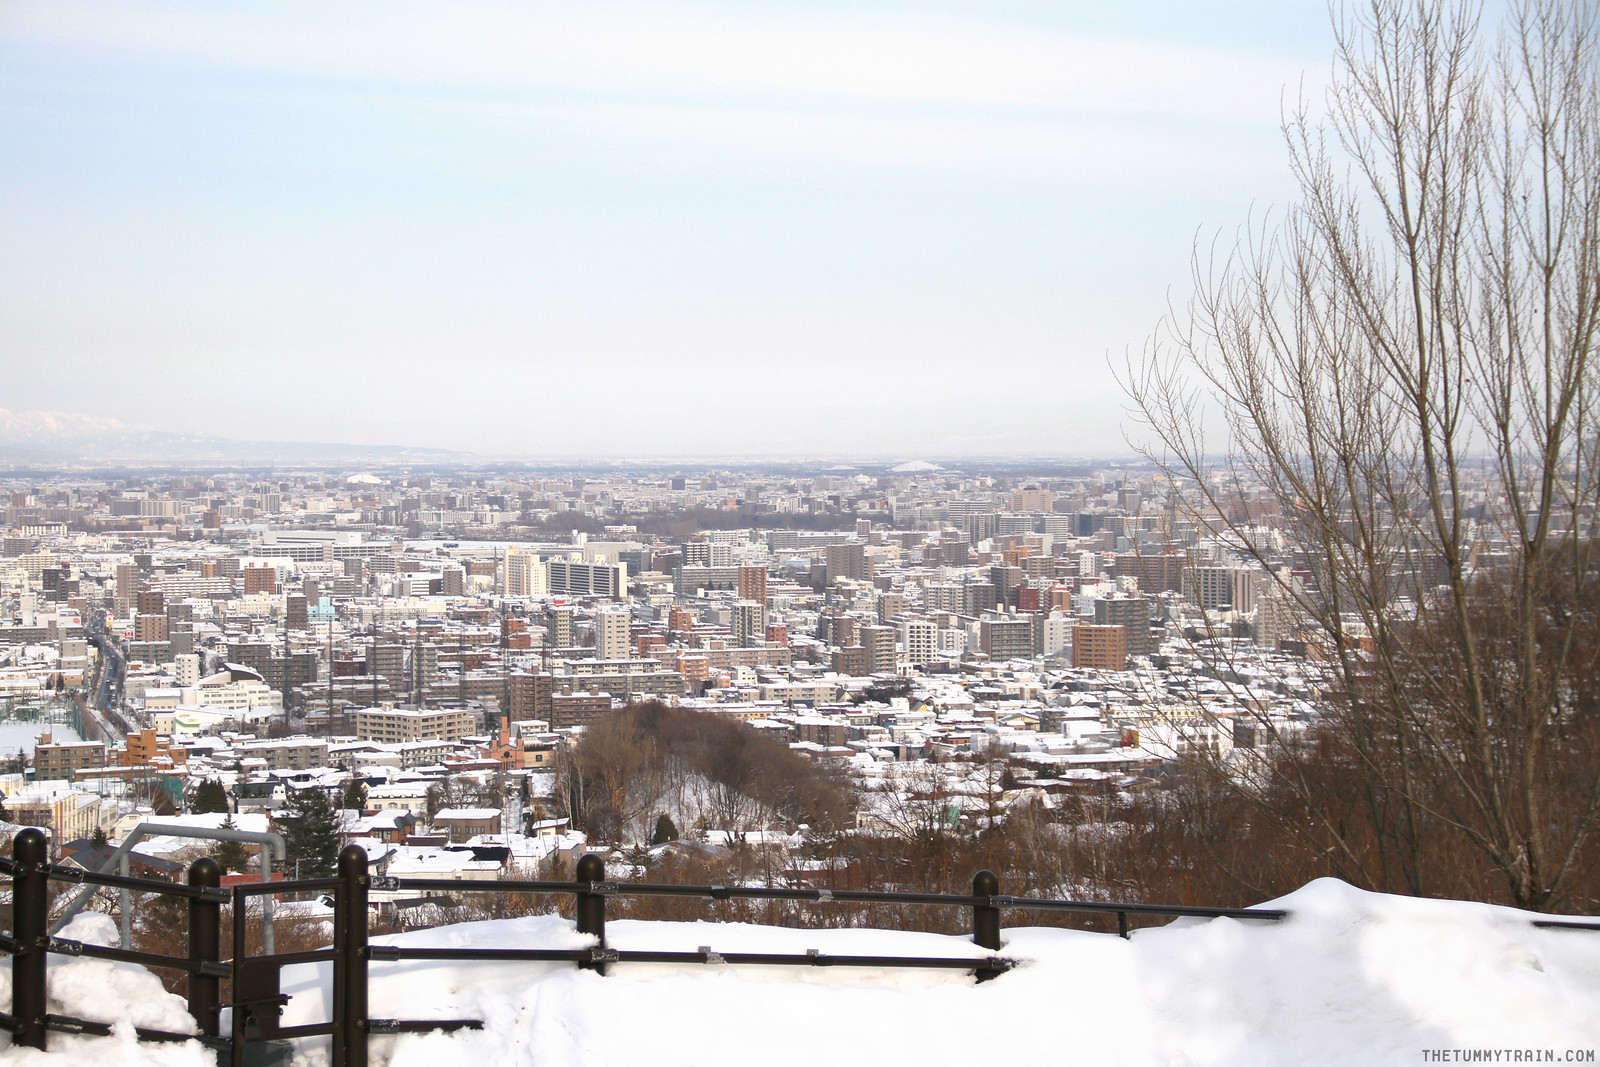 32073941684 71548dad66 h - Sapporo Snow And Smile: 8 Unforgettable Winter Experiences in Sapporo City